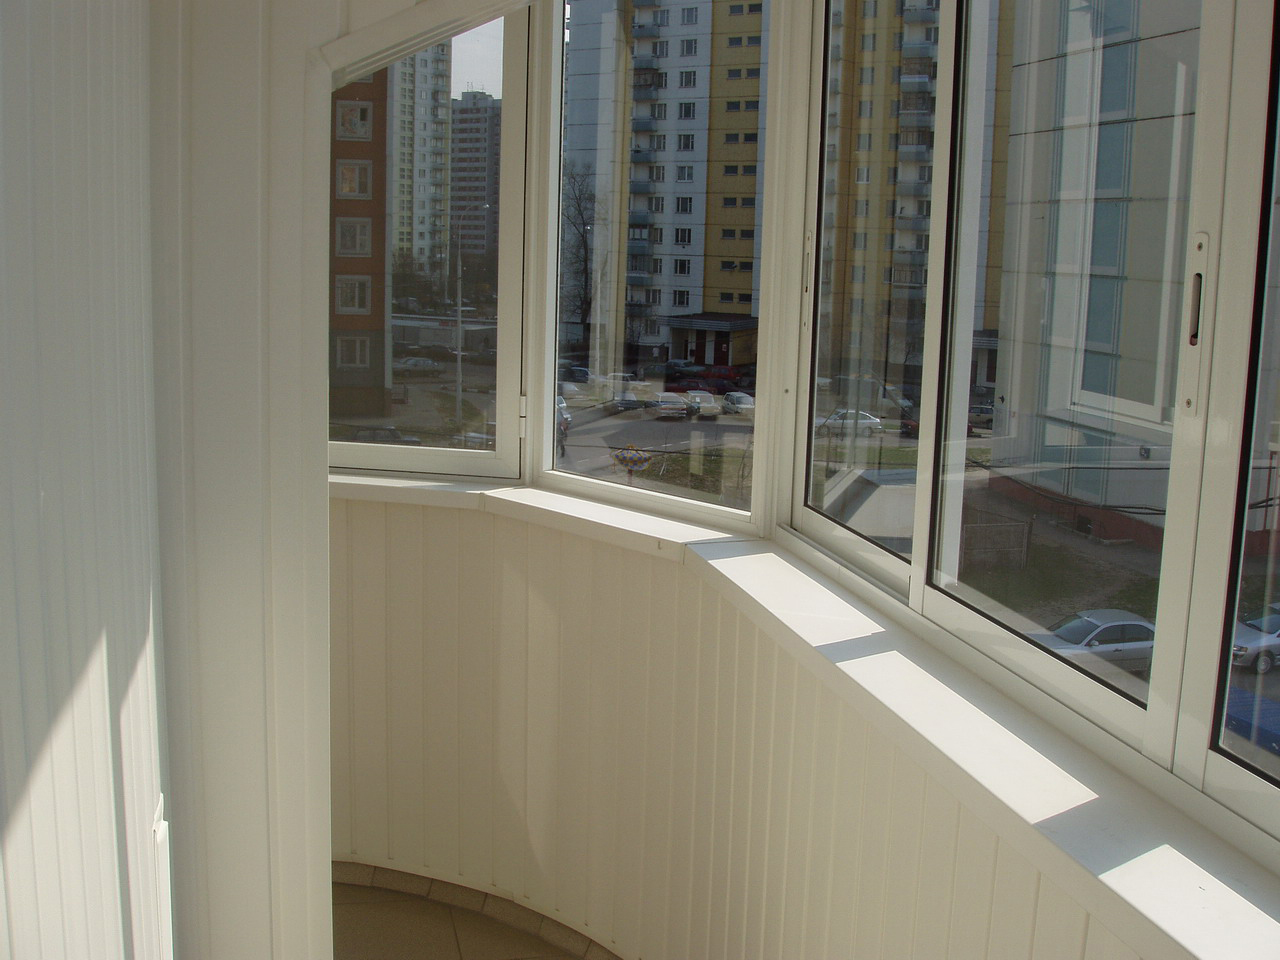 Modern Glazing for Balcony or Loggia. plastic frame for the window panes in the finished balcony